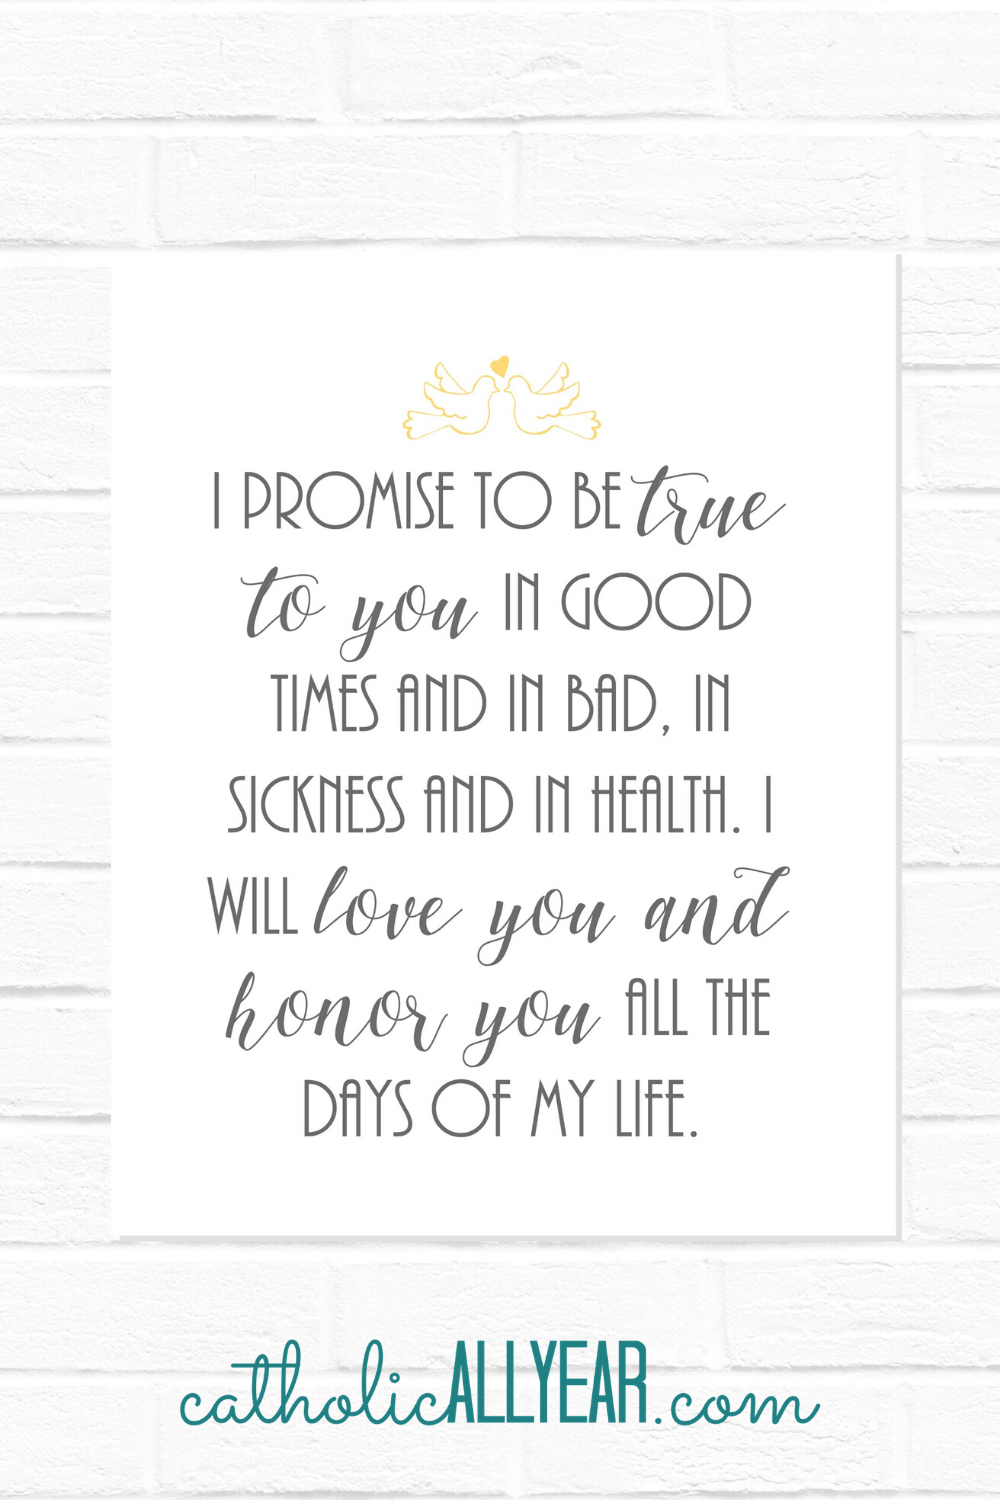 Wedding Vows Keepsake 2 I Promise To Be True To You Digital Download Catholic All Year In 2020 Catholic All Year Vows Wedding Vows